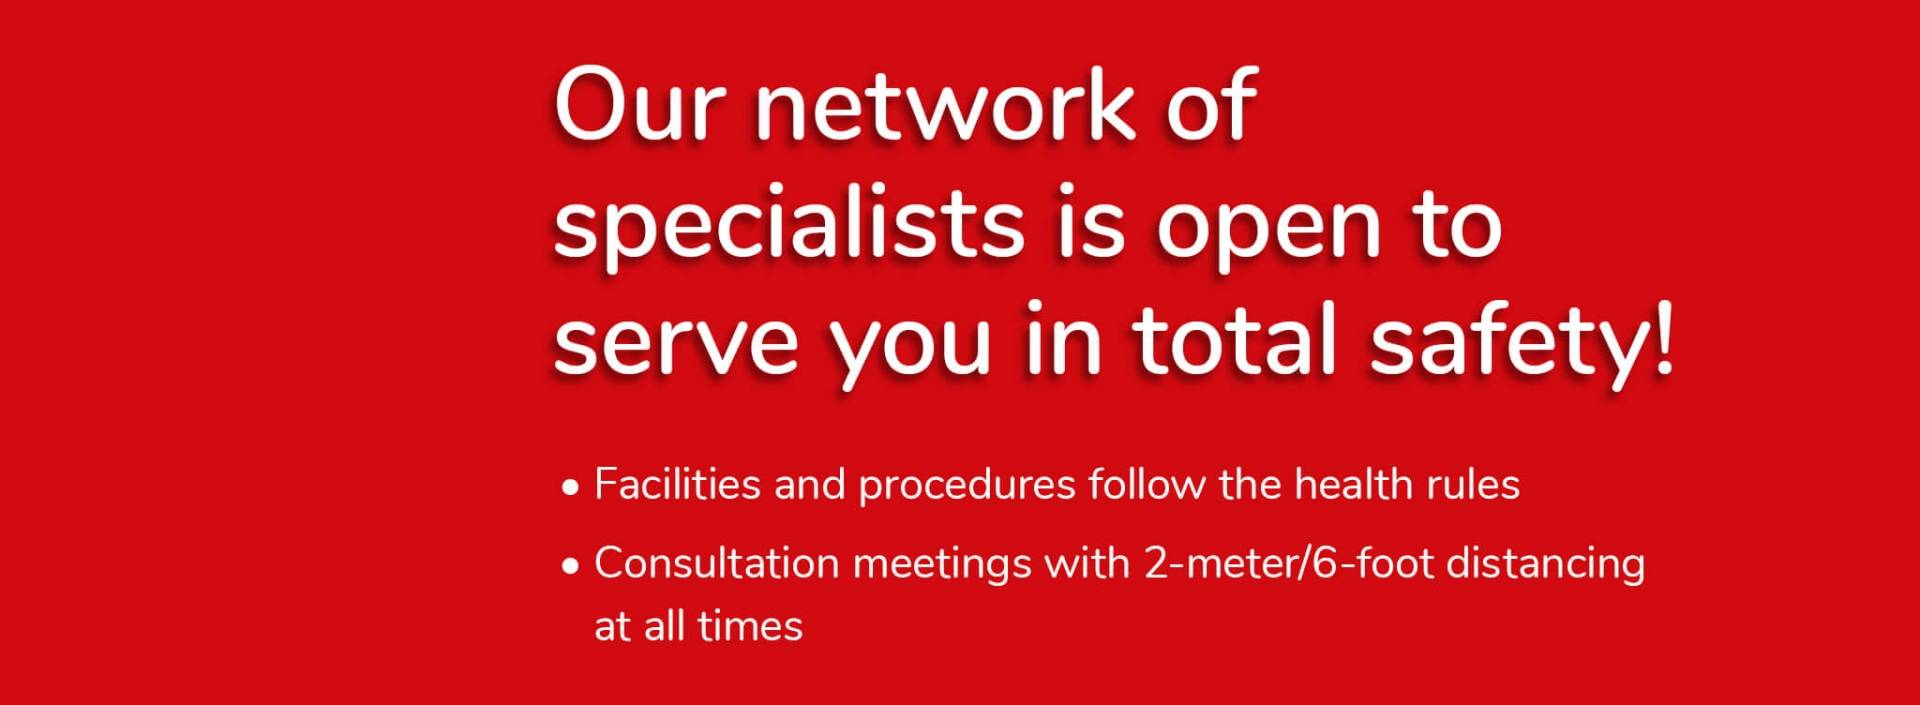 Our network of specialists is open to serve you in total safety!